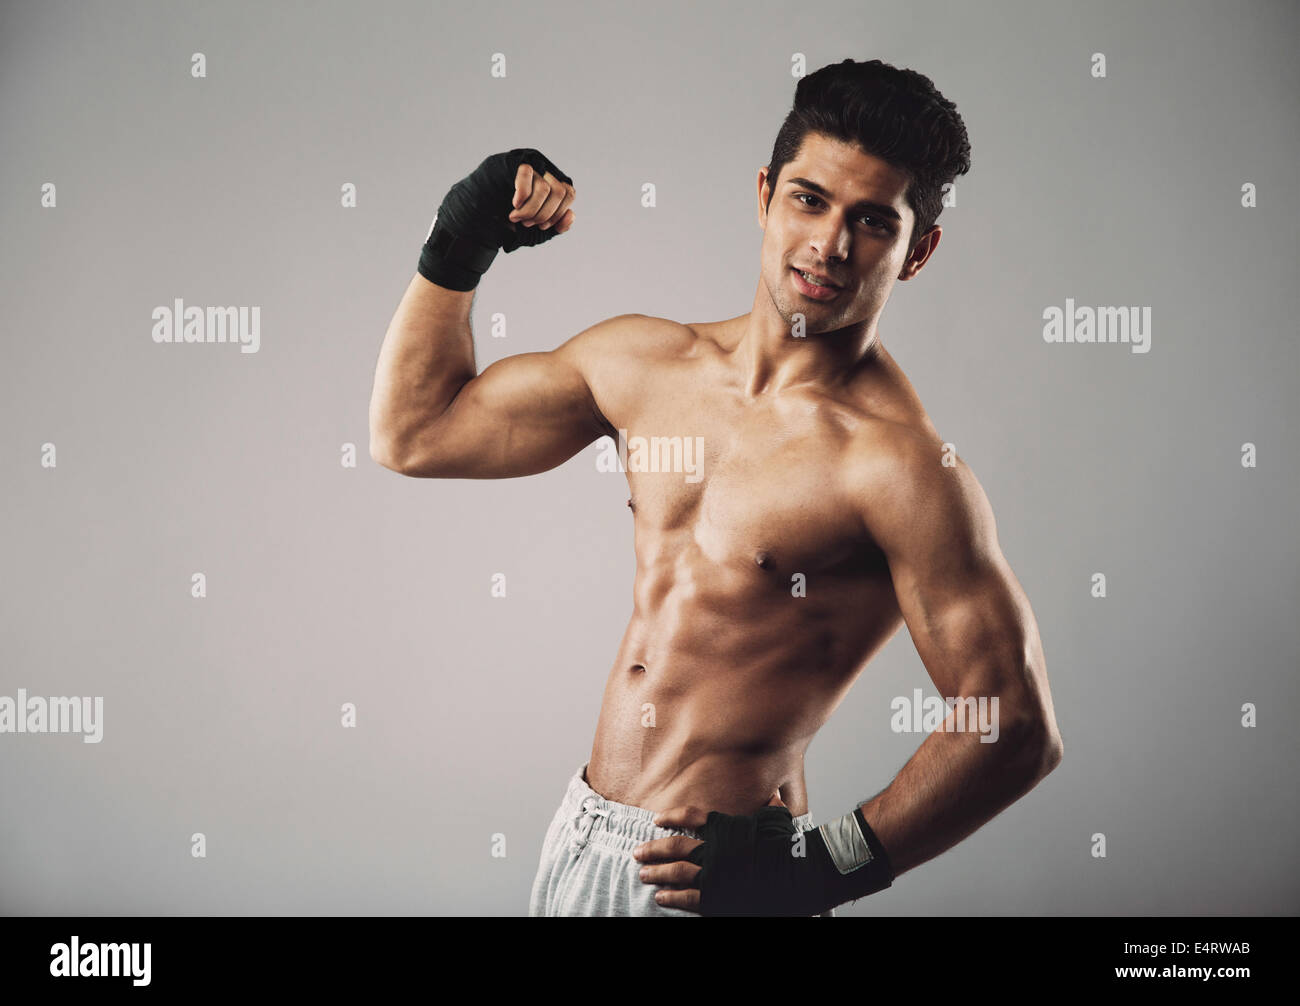 Portrait of muscular man pulling his bicep to show off. Hispanic young muscular man flexing his biceps on grey background. - Stock Image